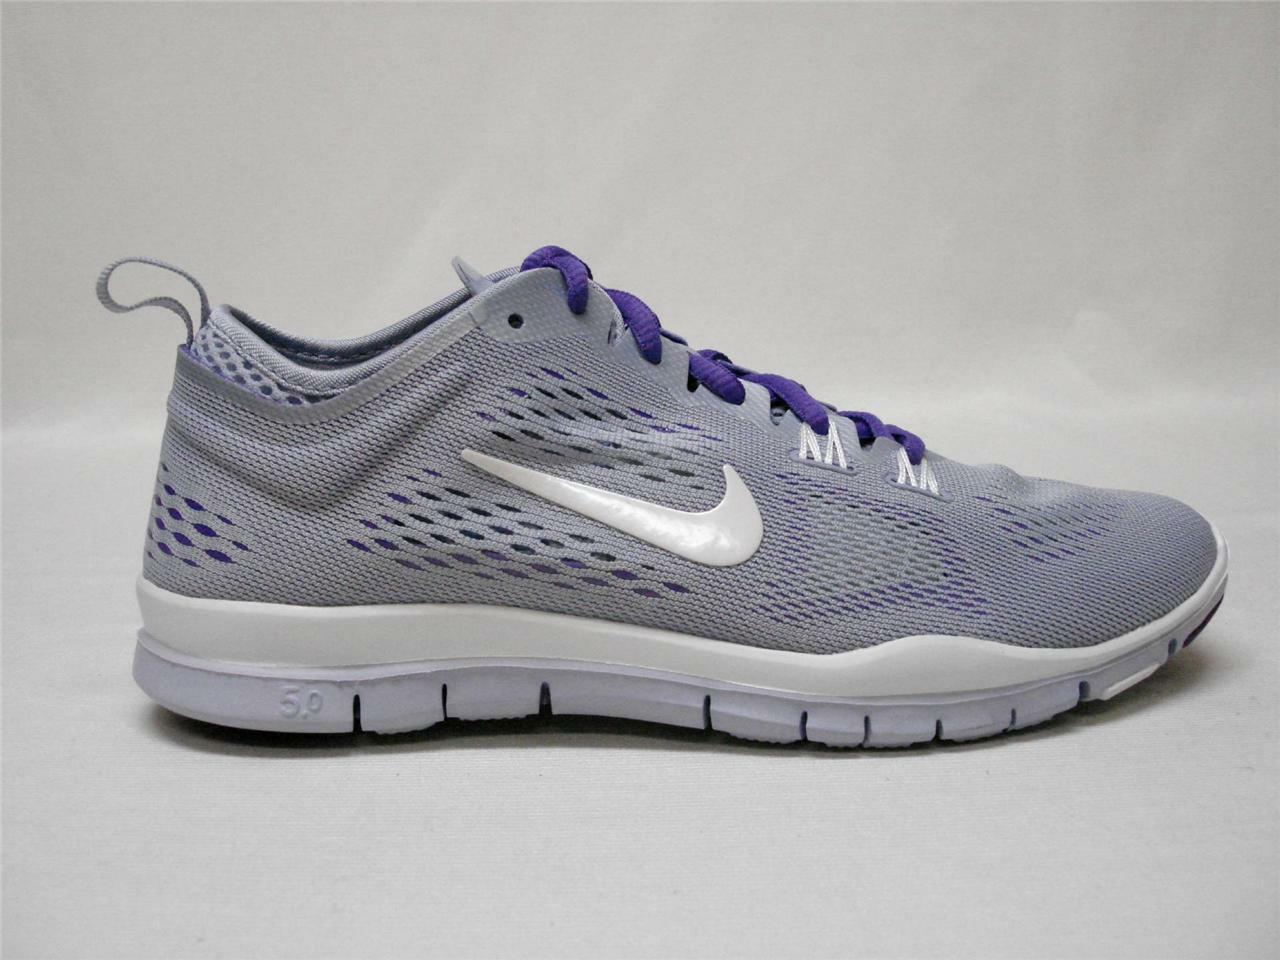 54095f94832 NIB NIKE FREE 5.0 TR FIT 4 BREATH BREATH BREATH WOMEN S SHOES 7.5 PURPLE  AWESOME SHOES d0171f